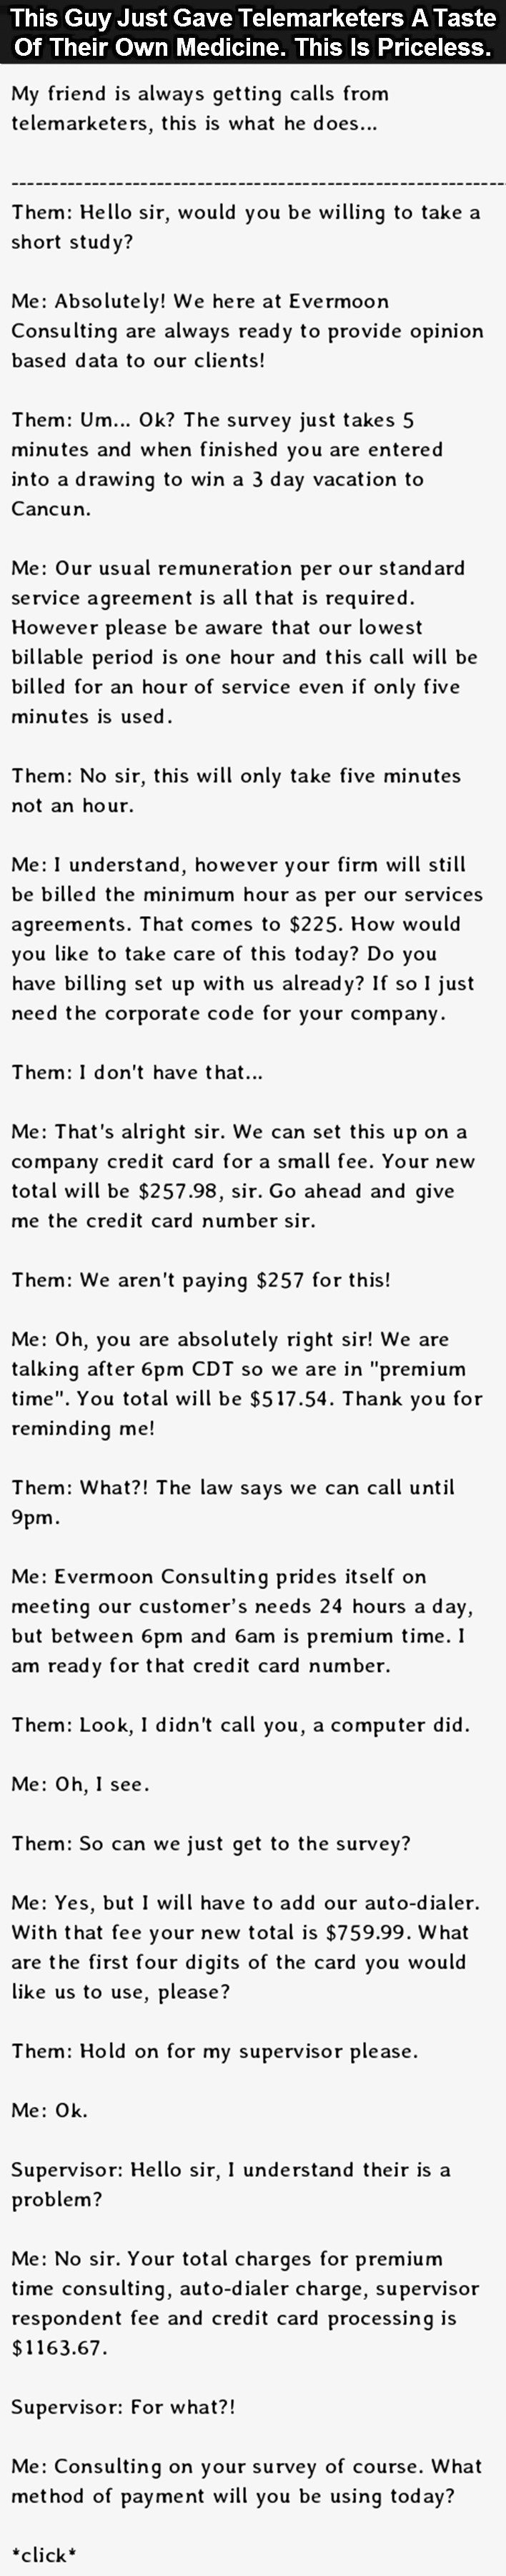 How To Deal With Telemarketers. This Guy Nails it.